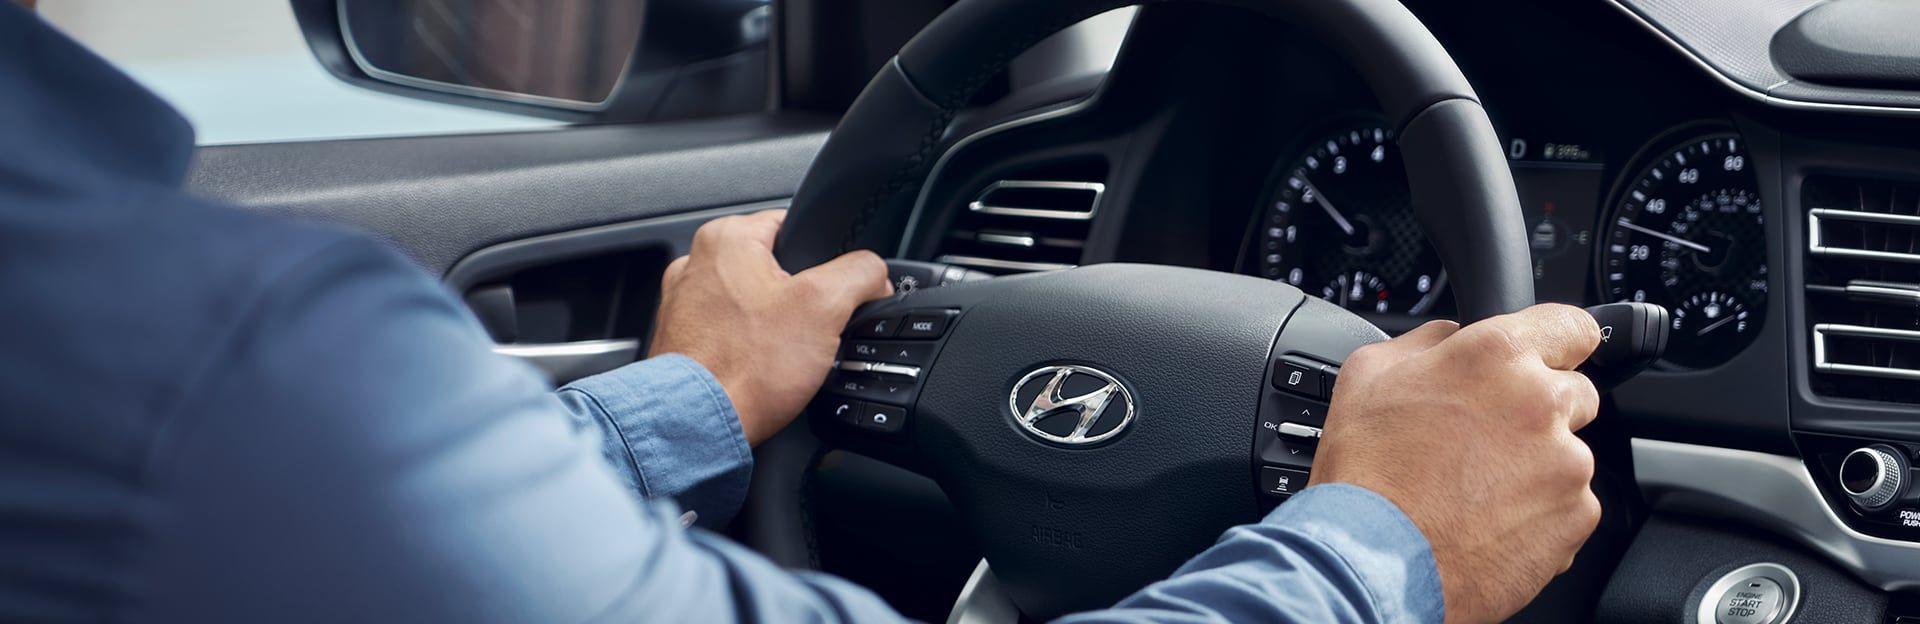 Steering Wheel of the 2019 Elantra